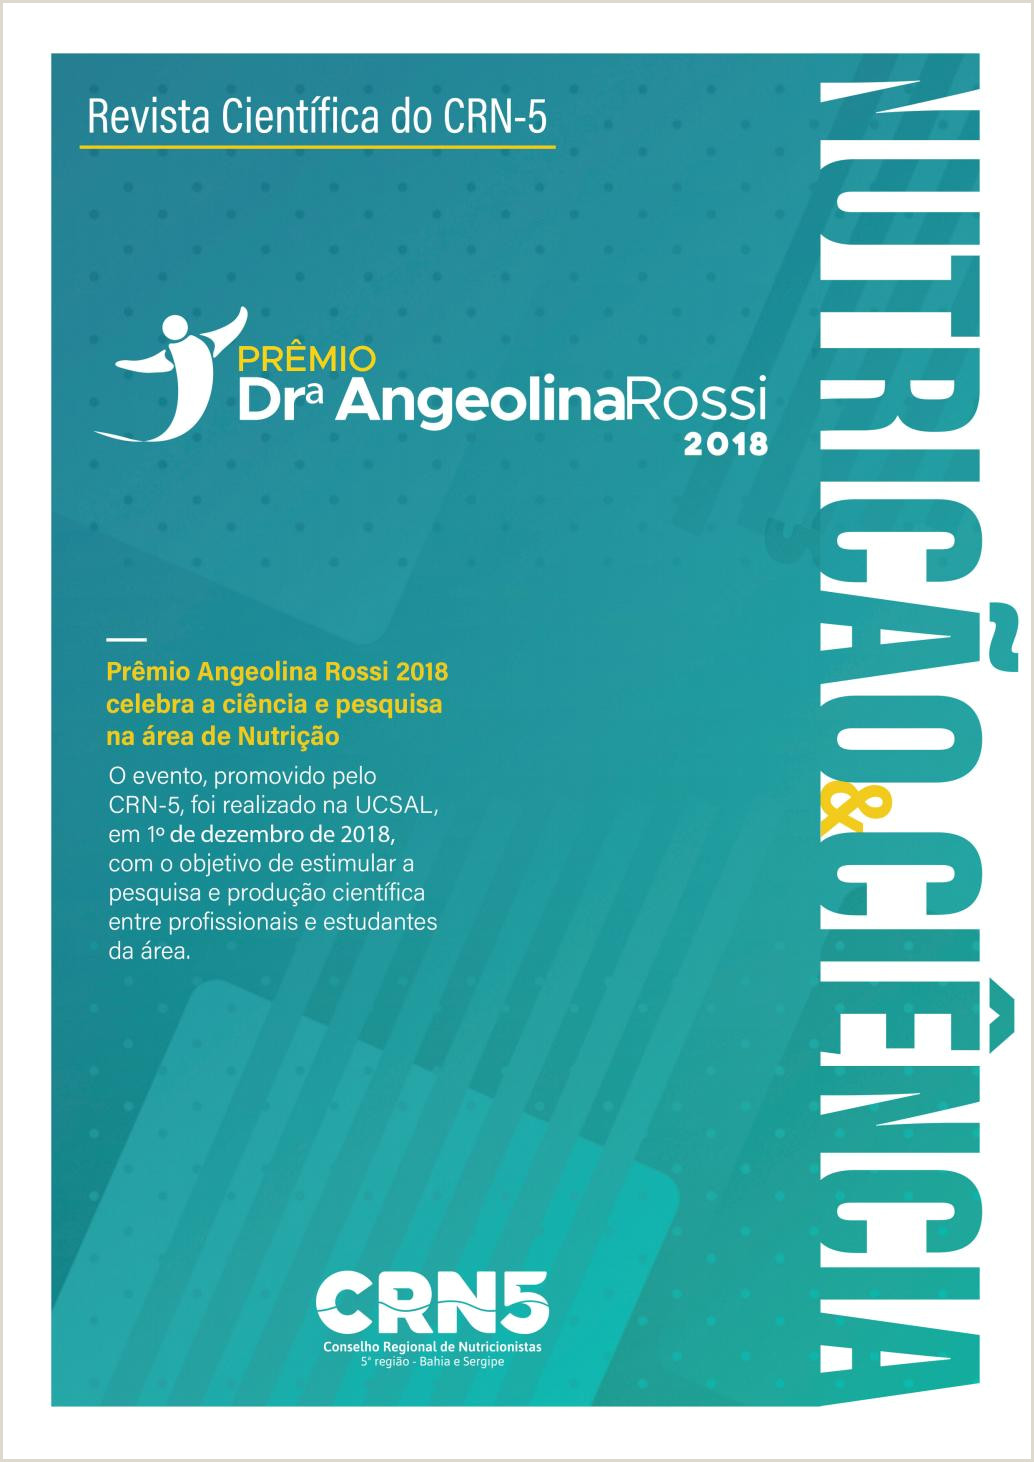 Curriculo Amostra Simples Revista Prªmio Angeolina Rossi 2018 by Crn 5 Conselho